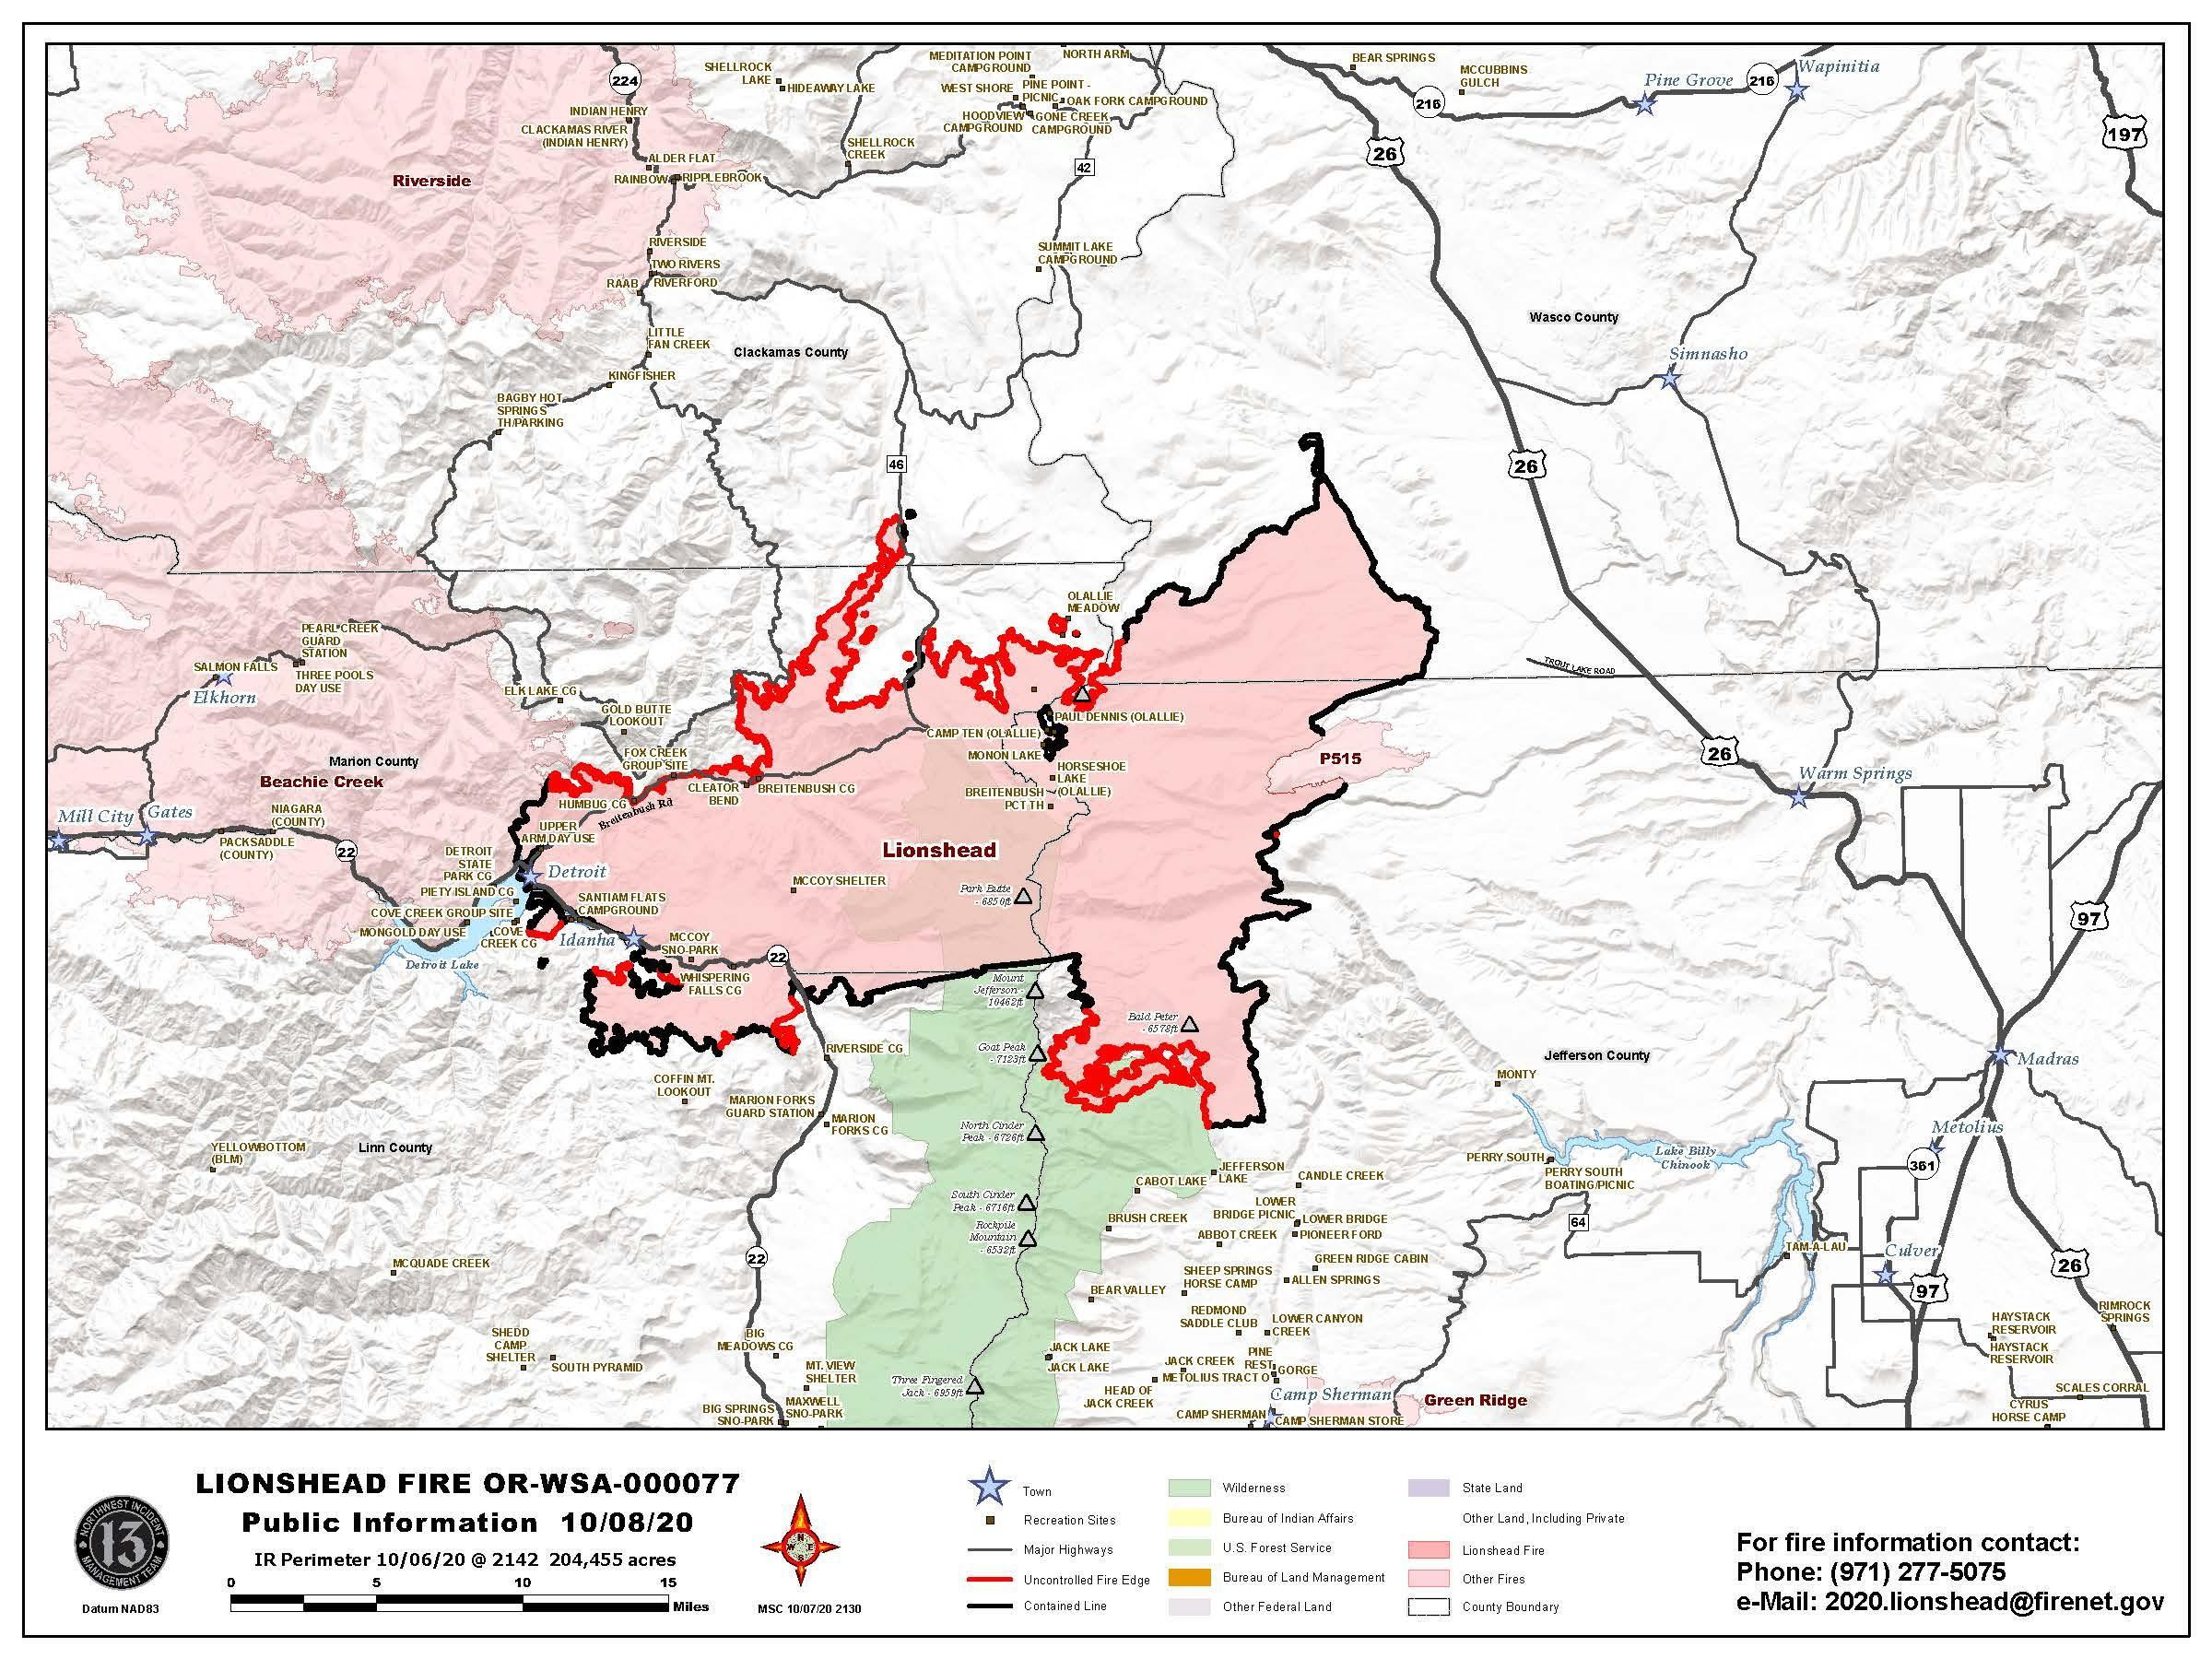 Lionshead Fire Map for Oct. 8, 2020